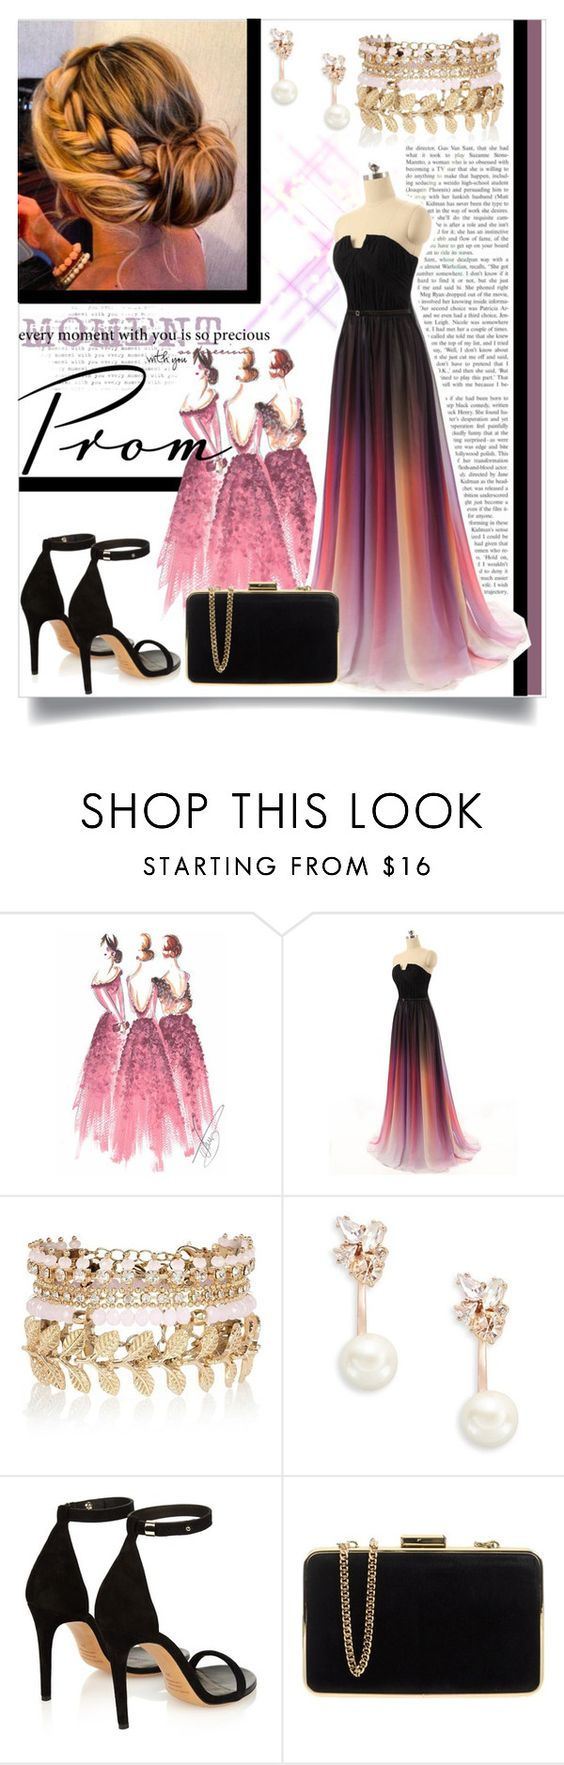 """""""Prom"""" by imajaa ❤ liked on Polyvore featuring River Island, Kate Spade, Isabel Marant, MICHAEL Michael Kors and promdoover"""